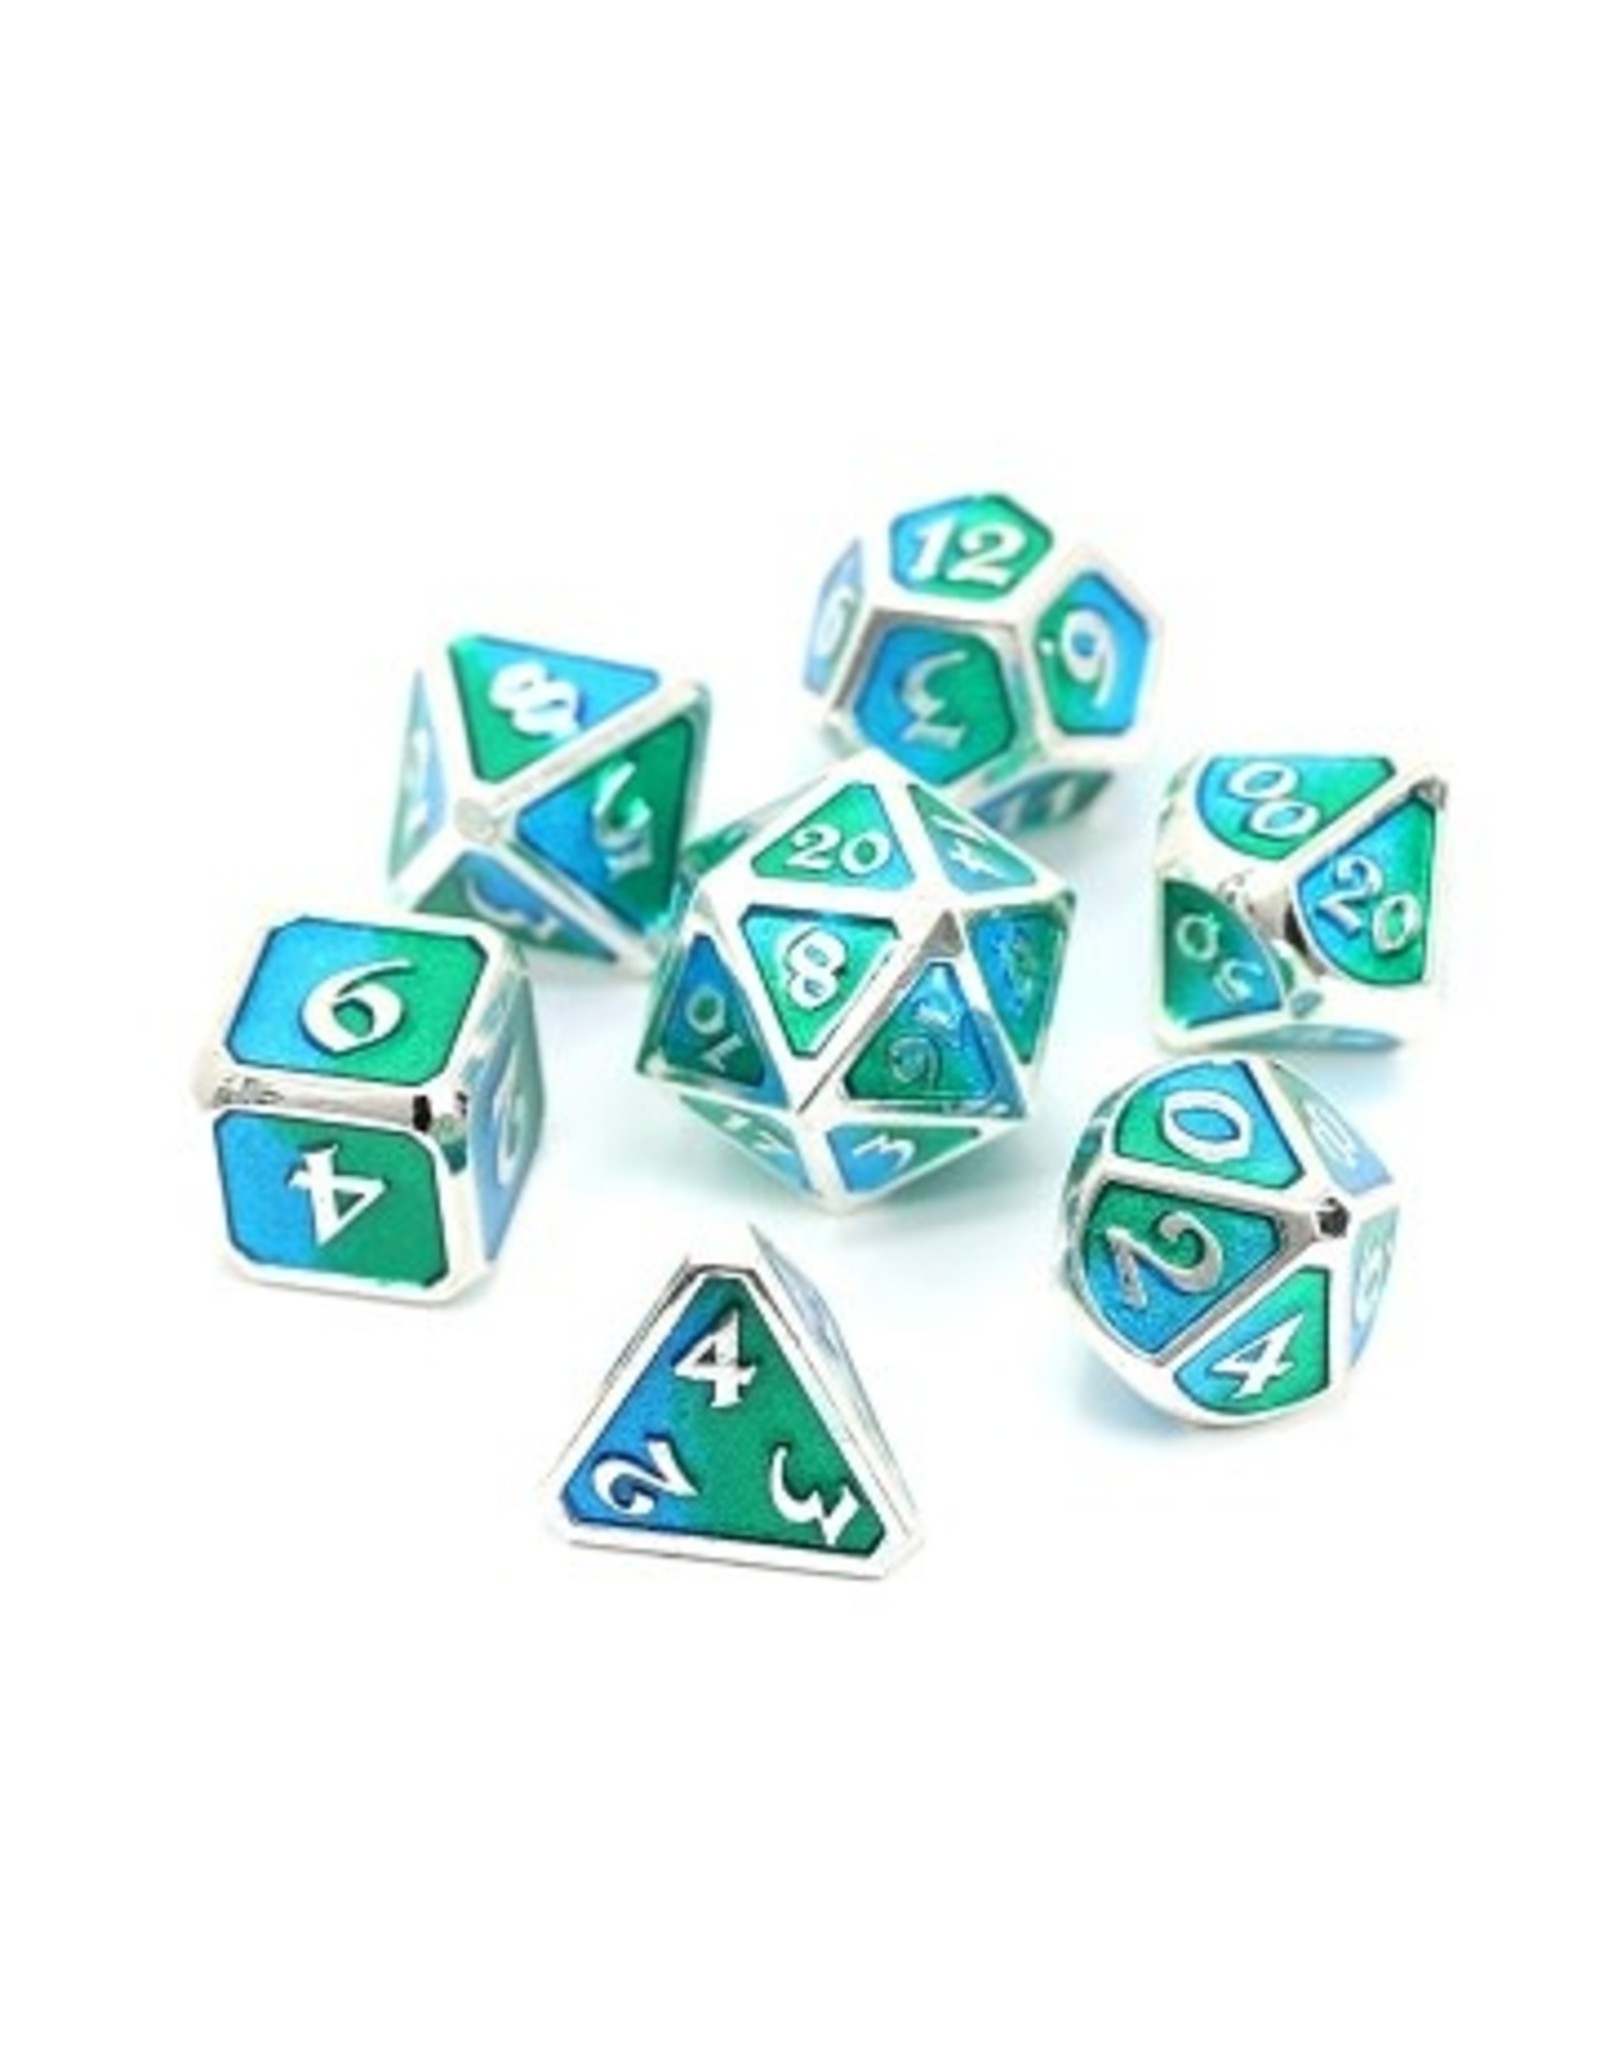 Die Hard Dice Die Hard Metal Dice